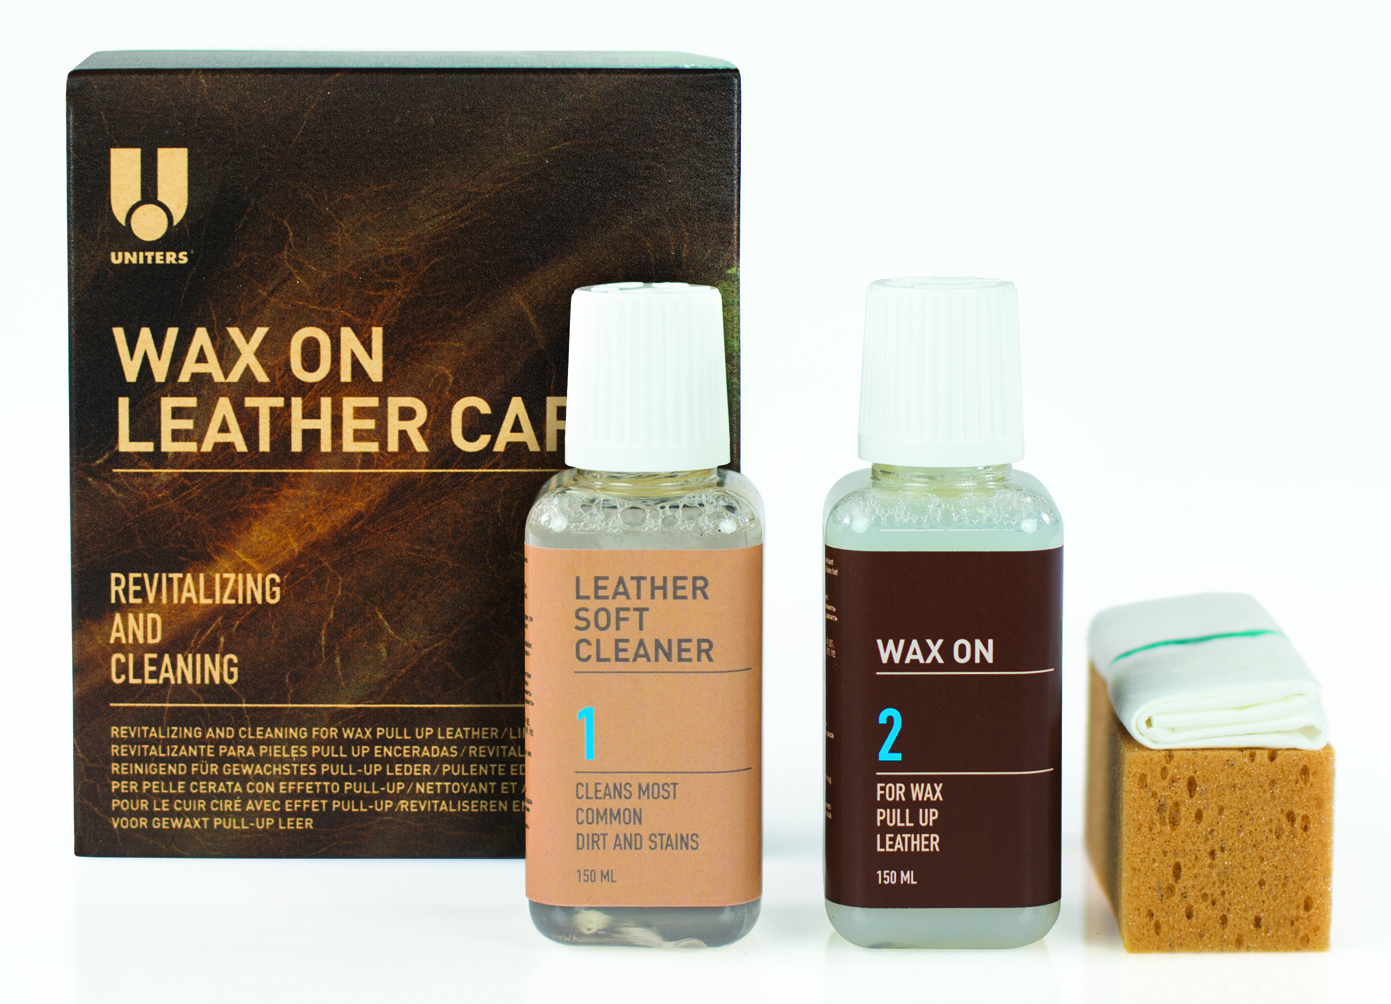 WAX ON LEATHER CARE KIT